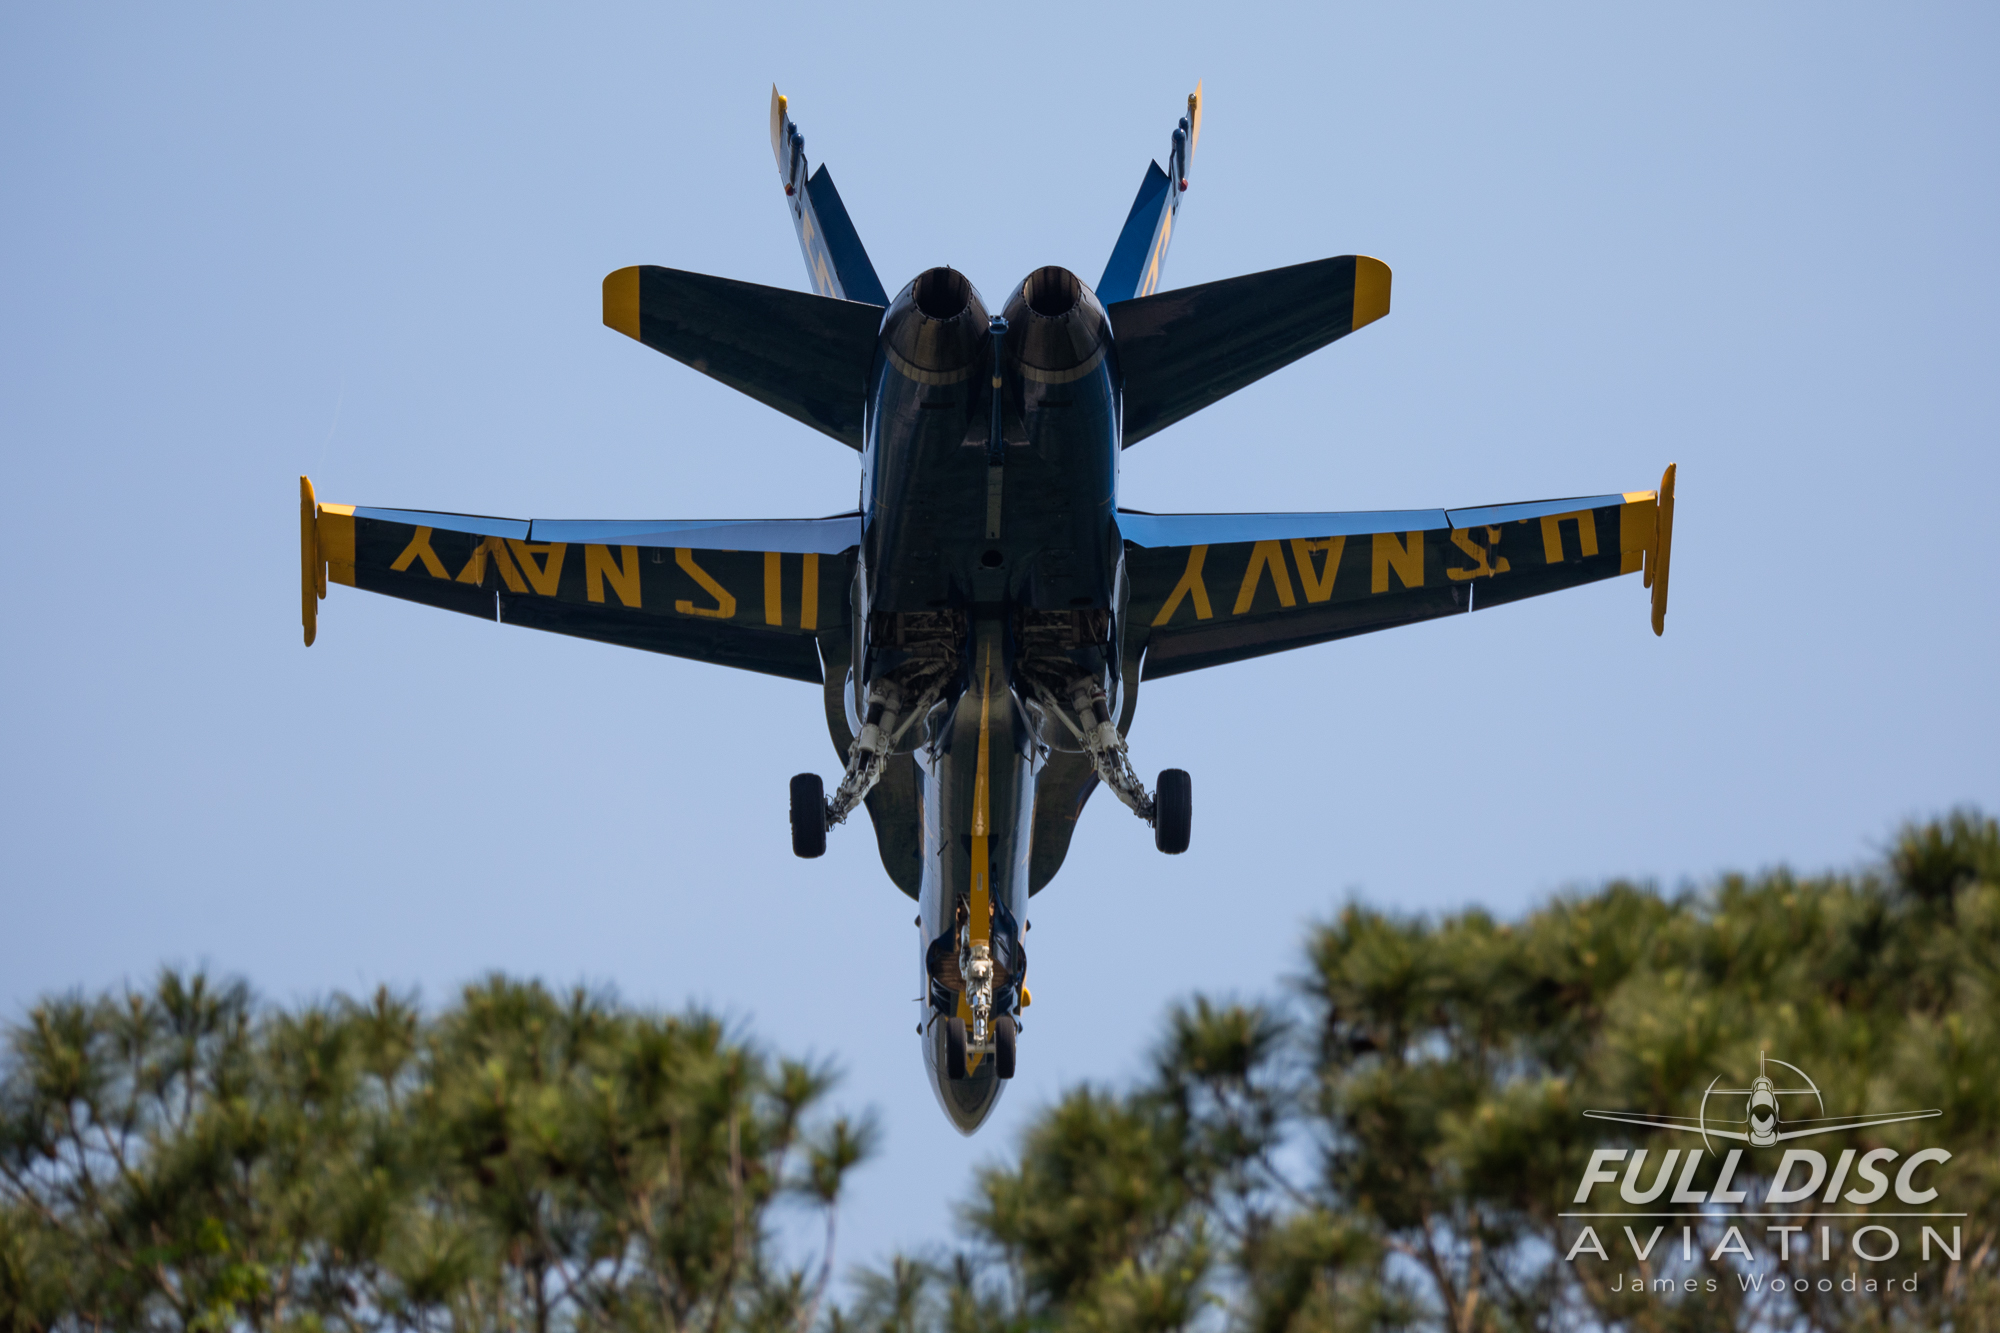 FullDiscAviation_JamesWoodard-April 25, 2019-98.jpg